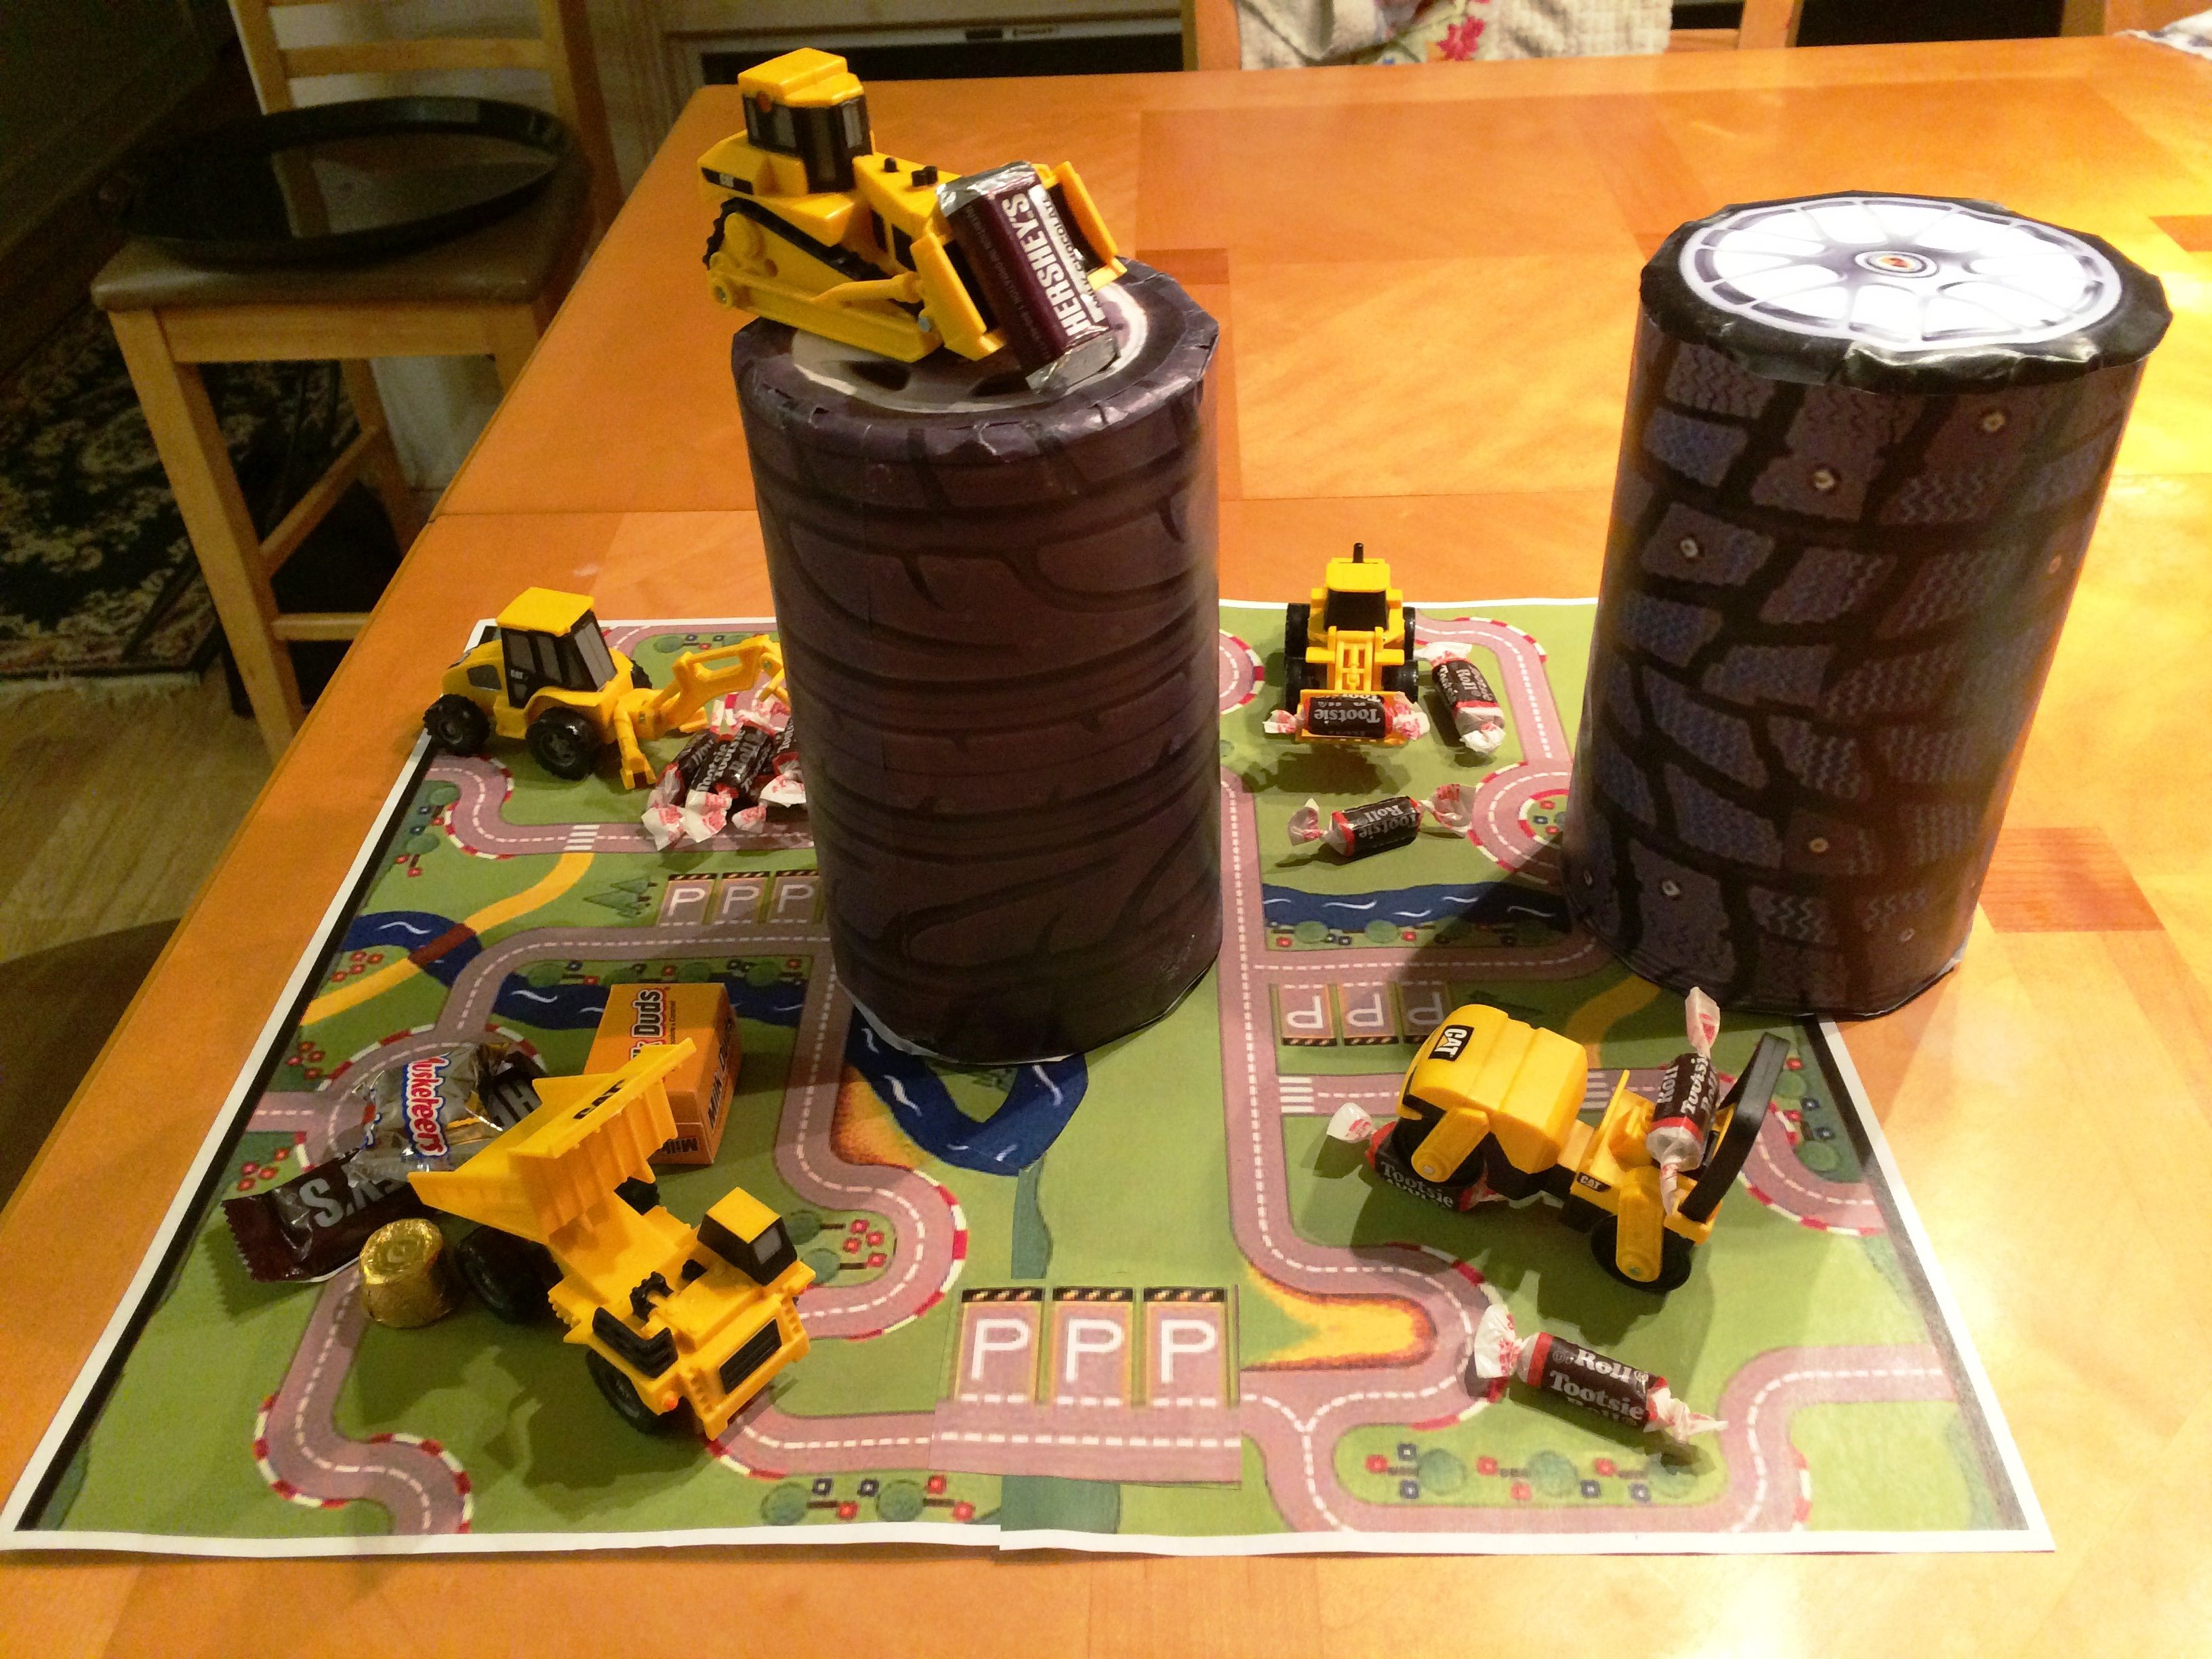 Diaper wipe canisters made into tires with construction vehicle theme for table decorations for Baby Monroe's shower.